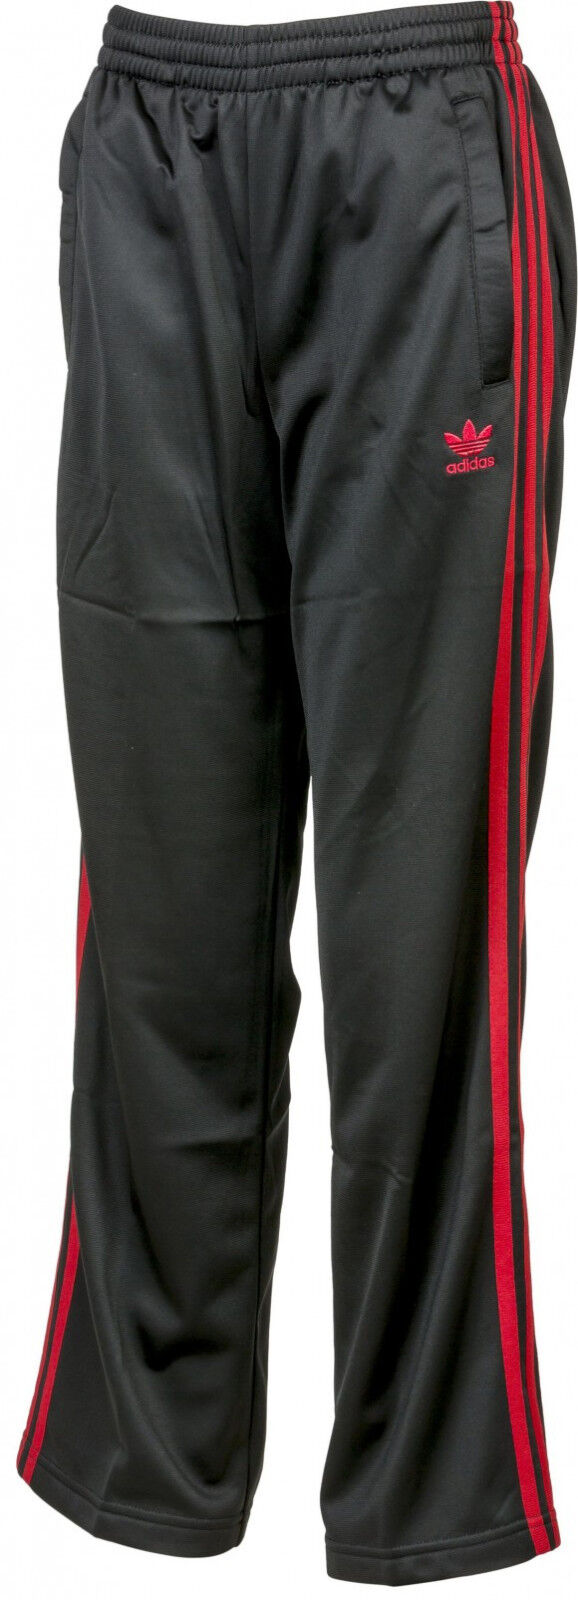 ADIDAS FIREBIRD [GR 128 -  176 ] JOGGINGHOSE TRAININGSHOSE M66073 black NEU  a lot of concessions